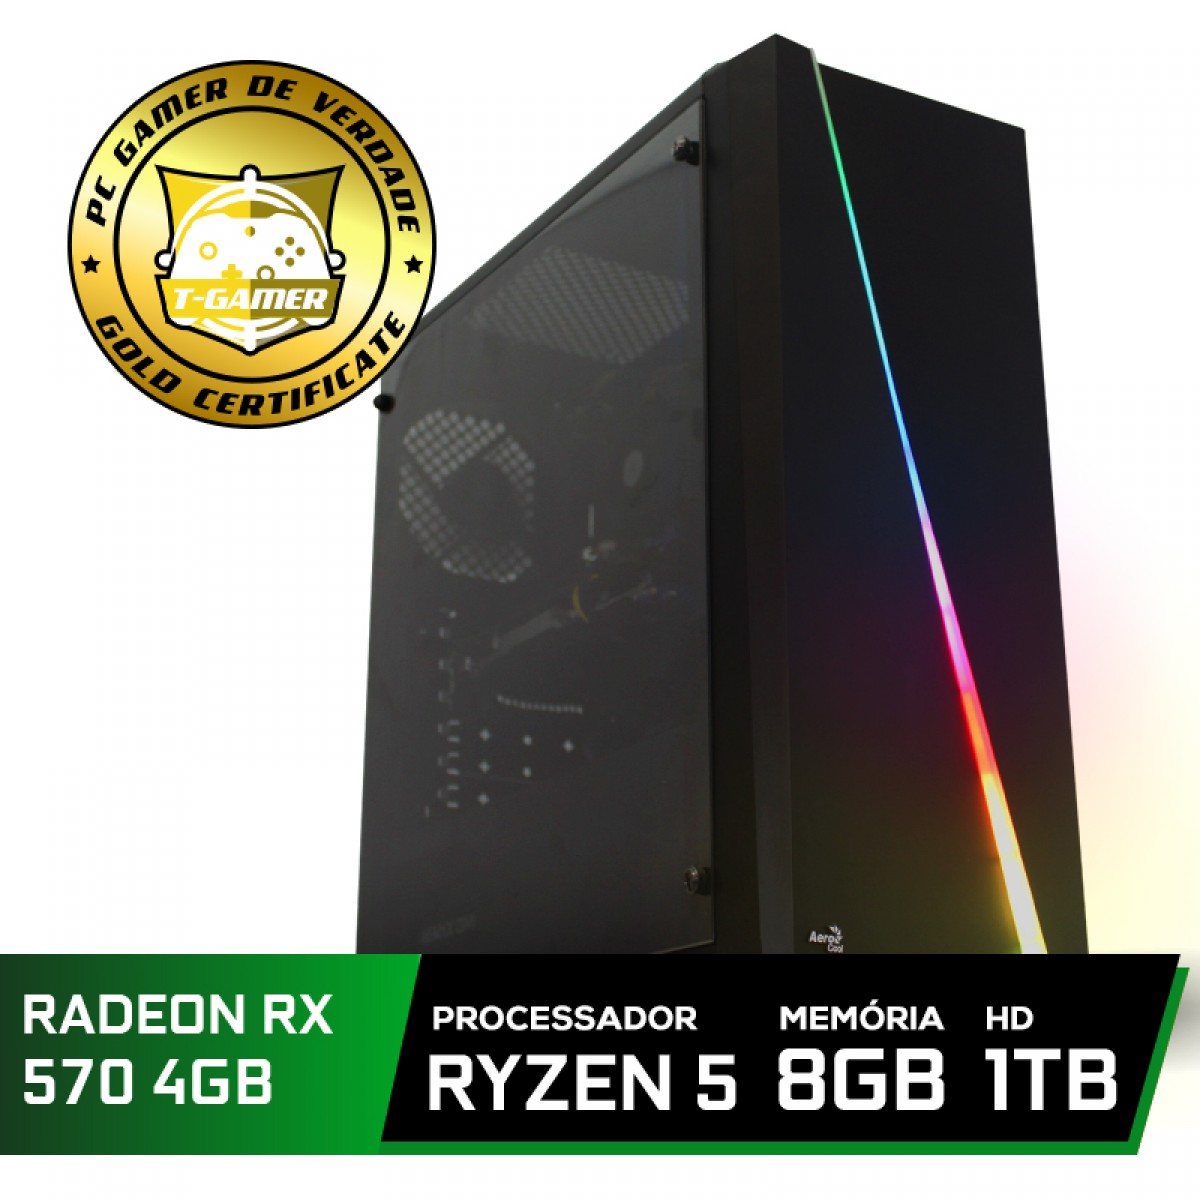 Pc Gamer Tera Edition AMD Ryzen 5 3500 / Radeon RX 570 4GB  / DDR4 8GB / HD 1TB / 500W